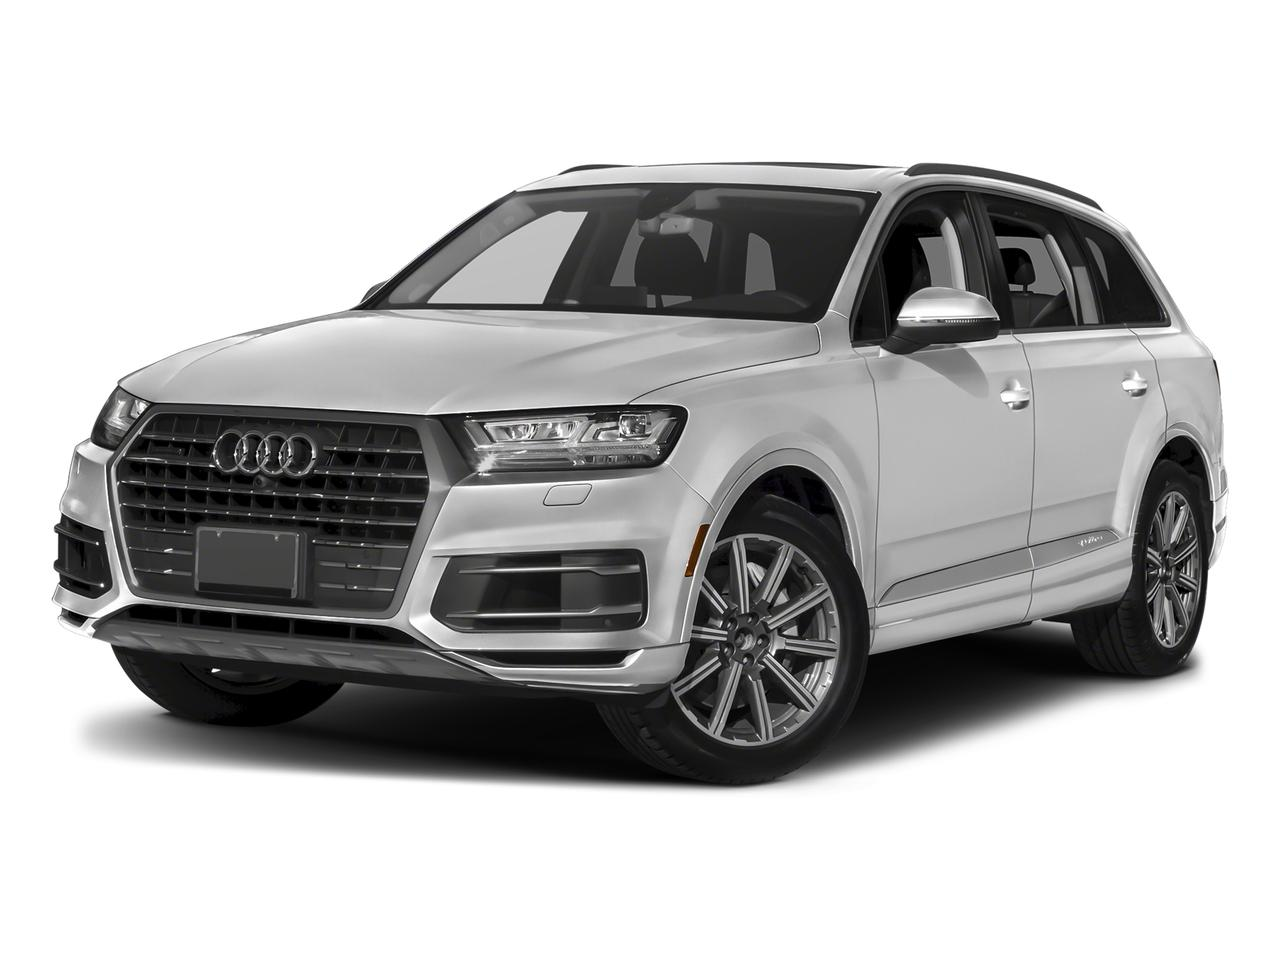 2018 audi q7 for sale in fife wa1laaf74jd021233 larson cadillac larson cadillac